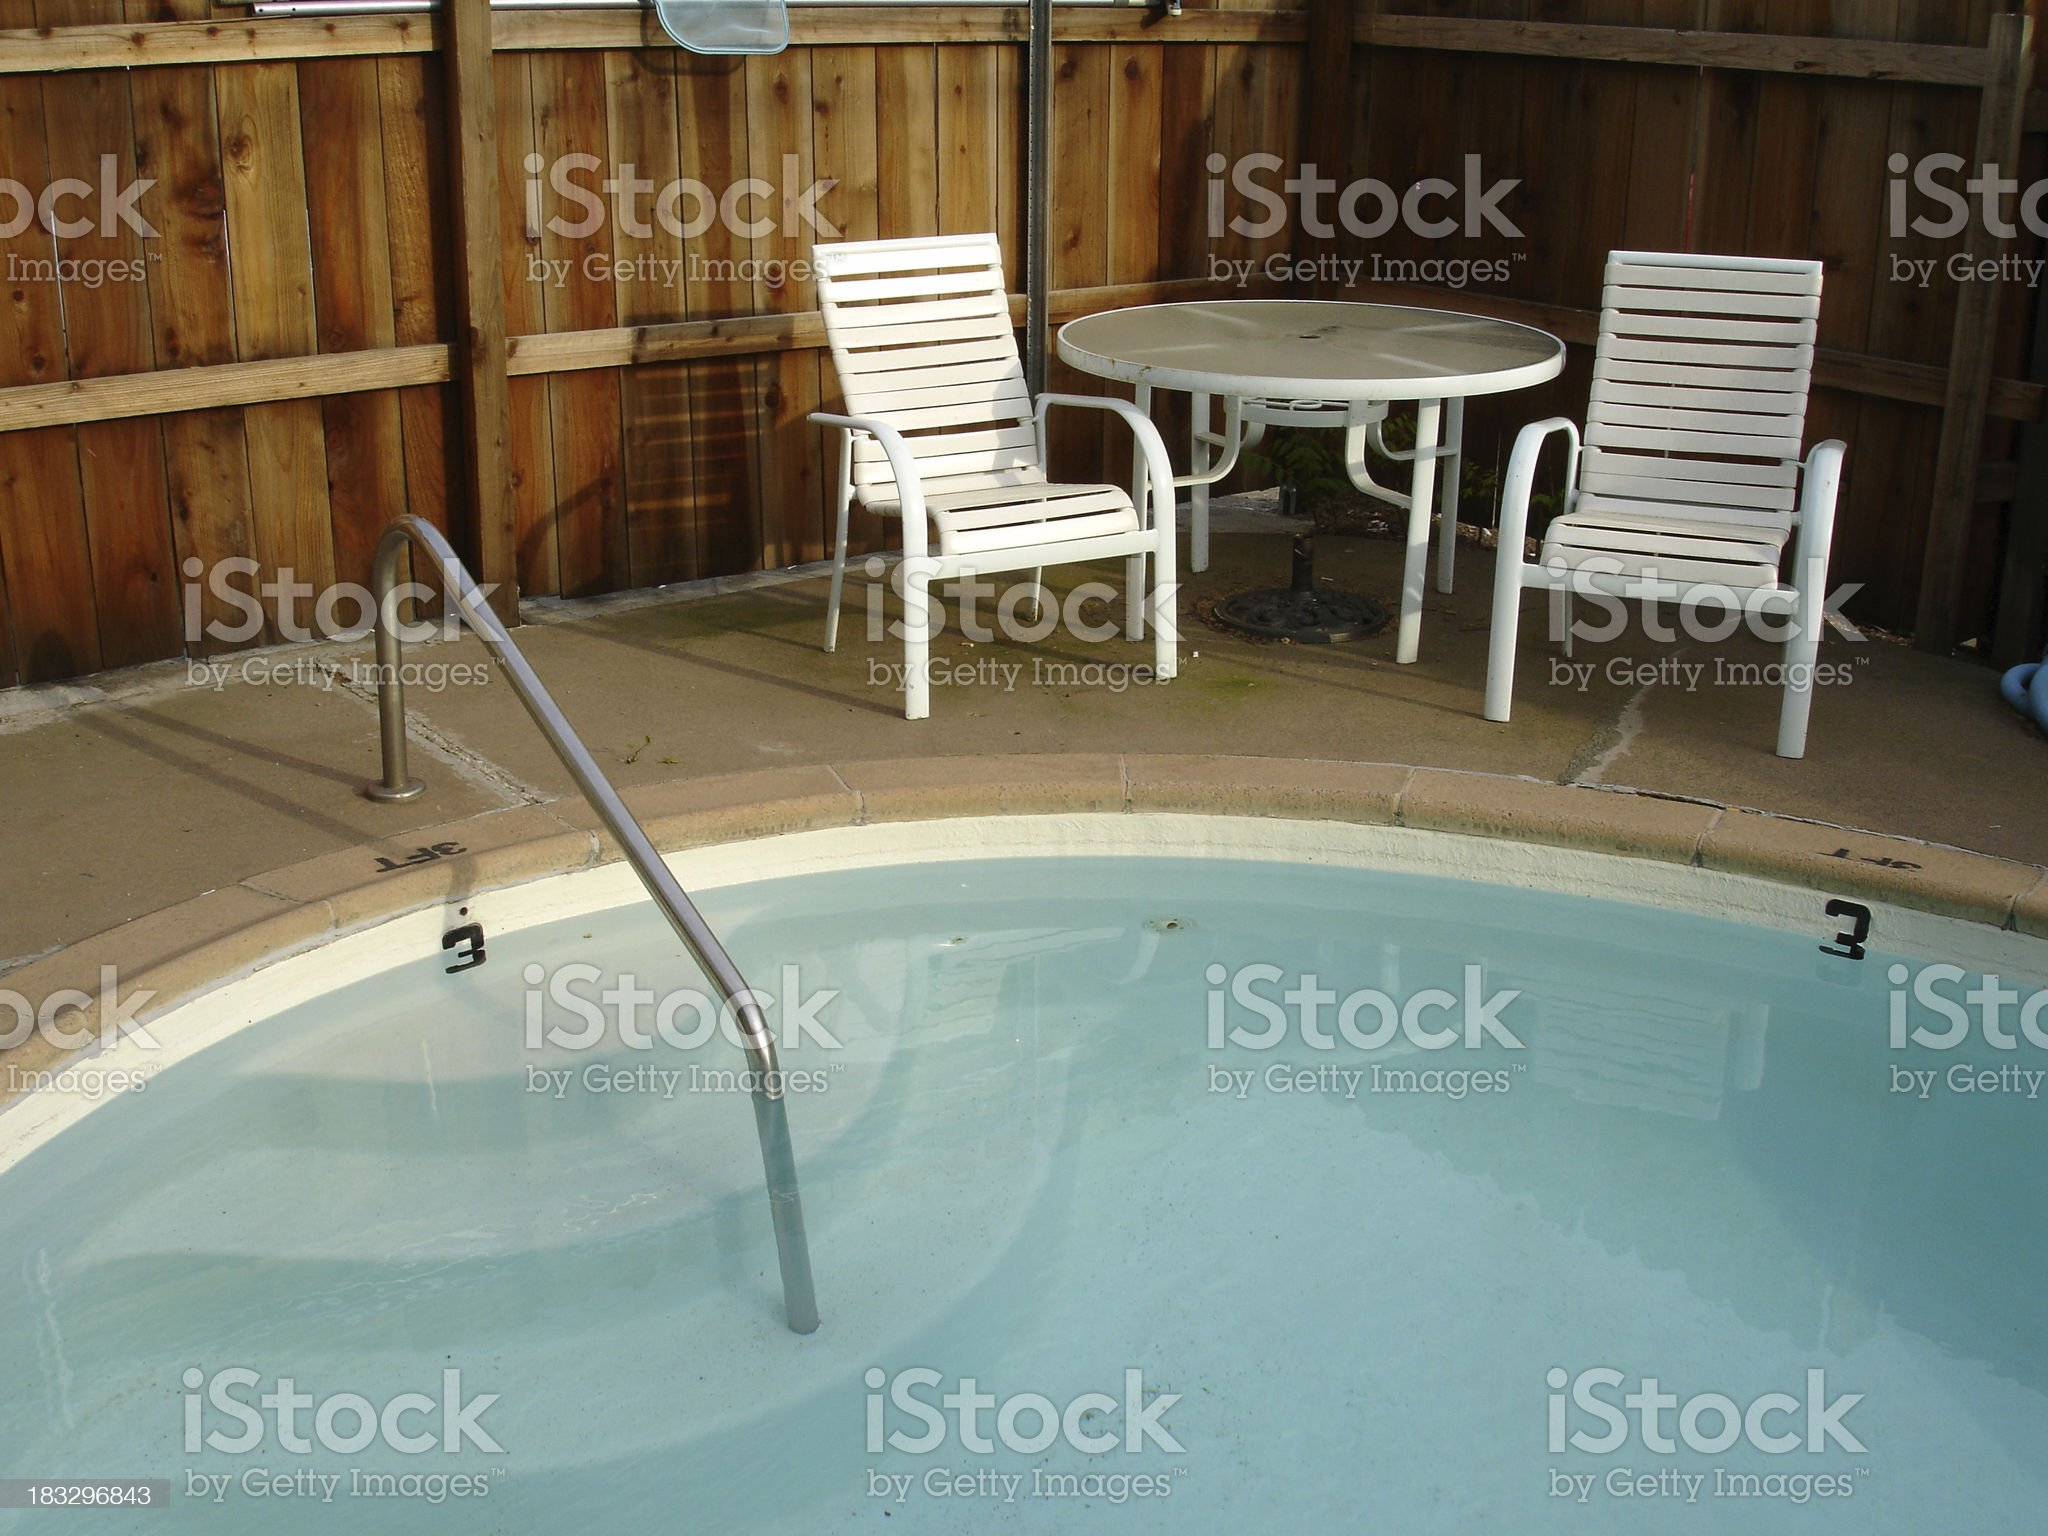 California swimming pool set , steps, table and chairs royalty-free stock photo